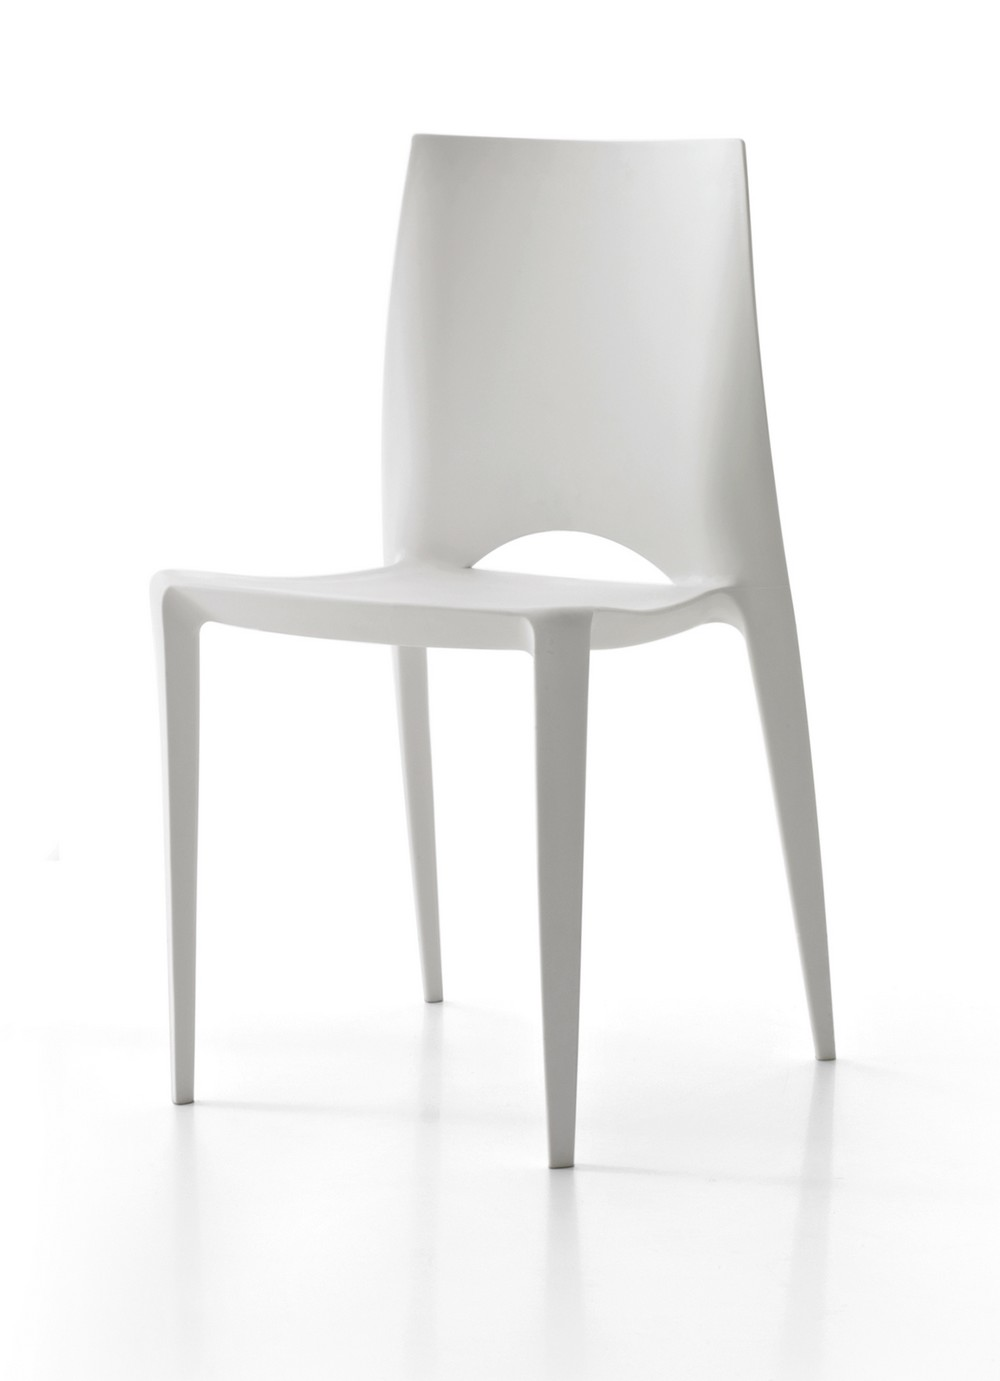 Emy chair made of polypropylene Point